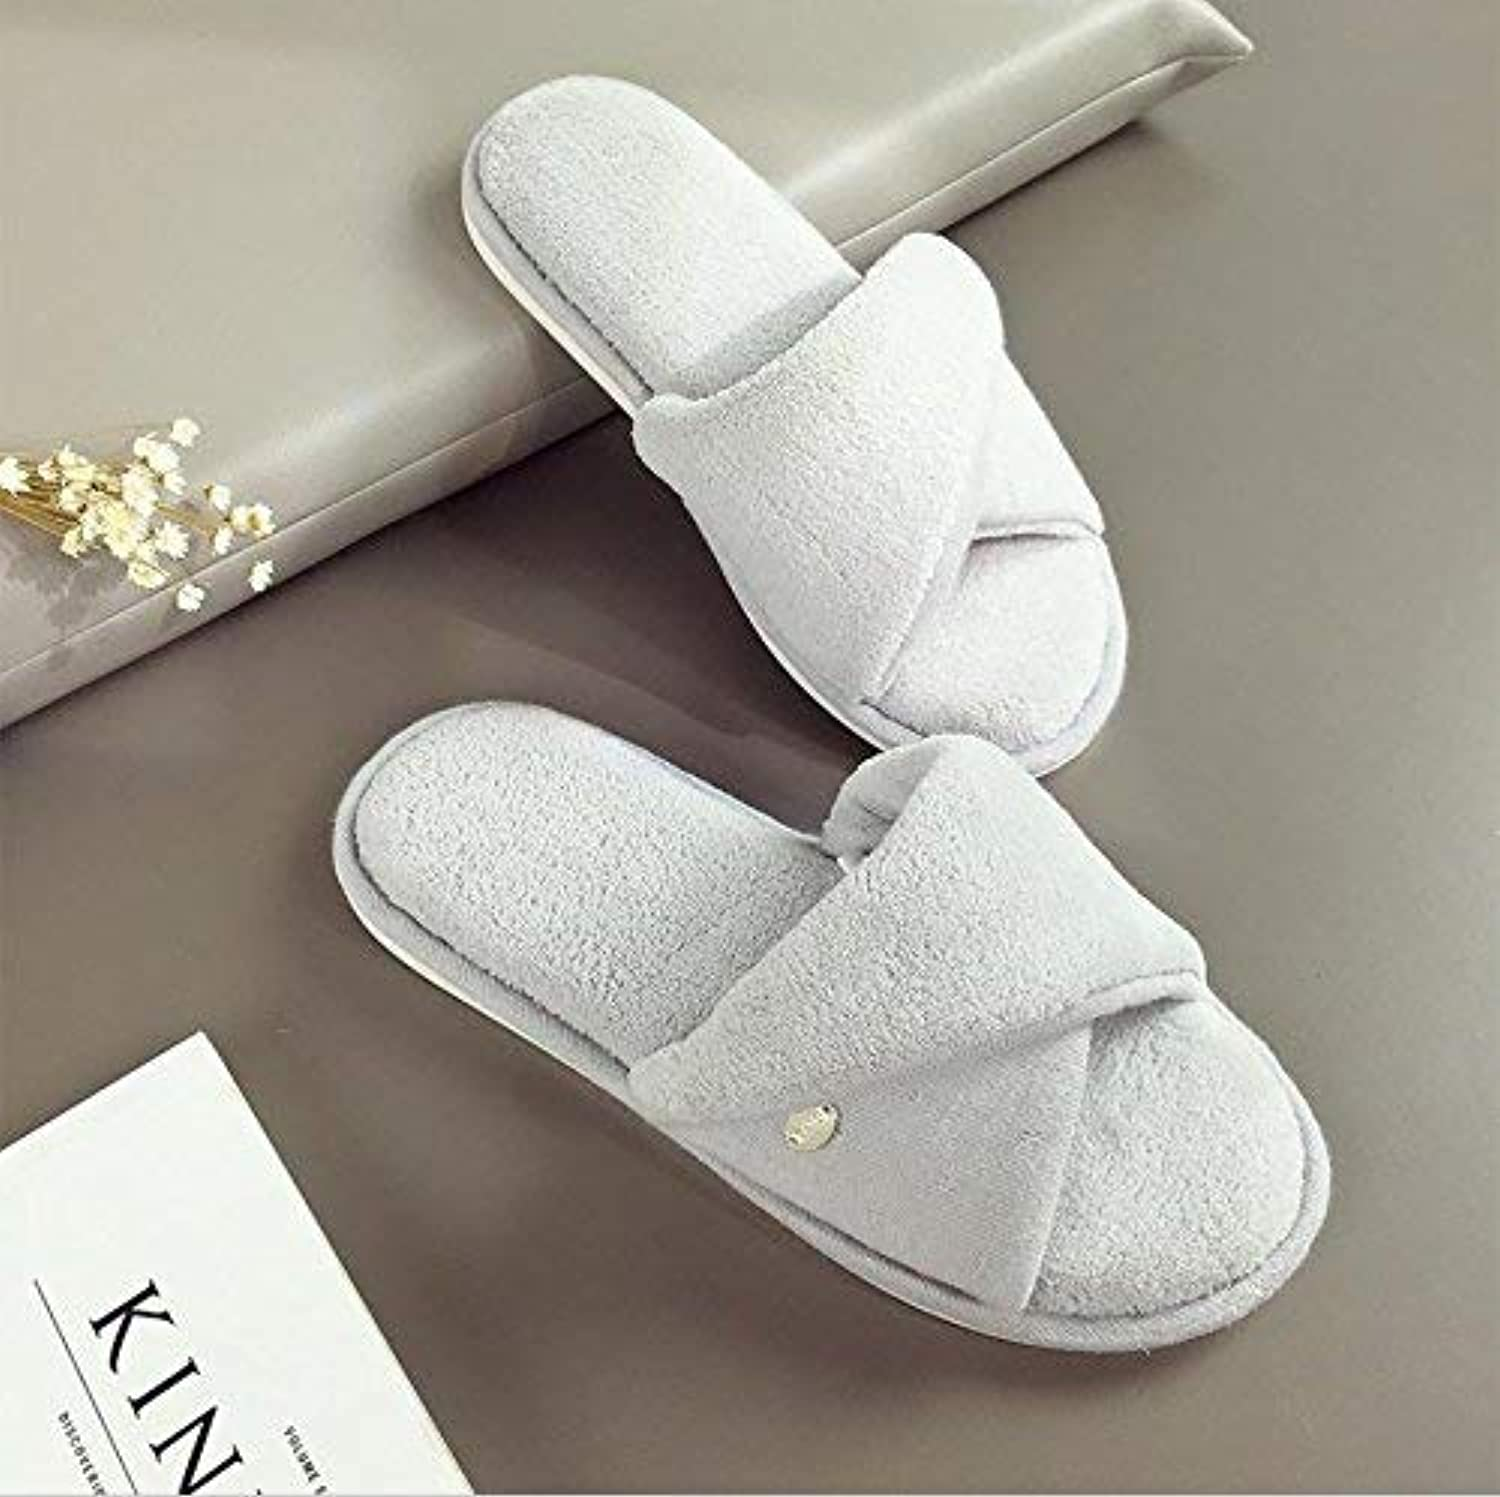 JaHGDU Ladies Slippers Slip at Home to Keep Warm in Autumn and Winter Leisure Solid color Super Soft Casual Breathable Cotton Slippers